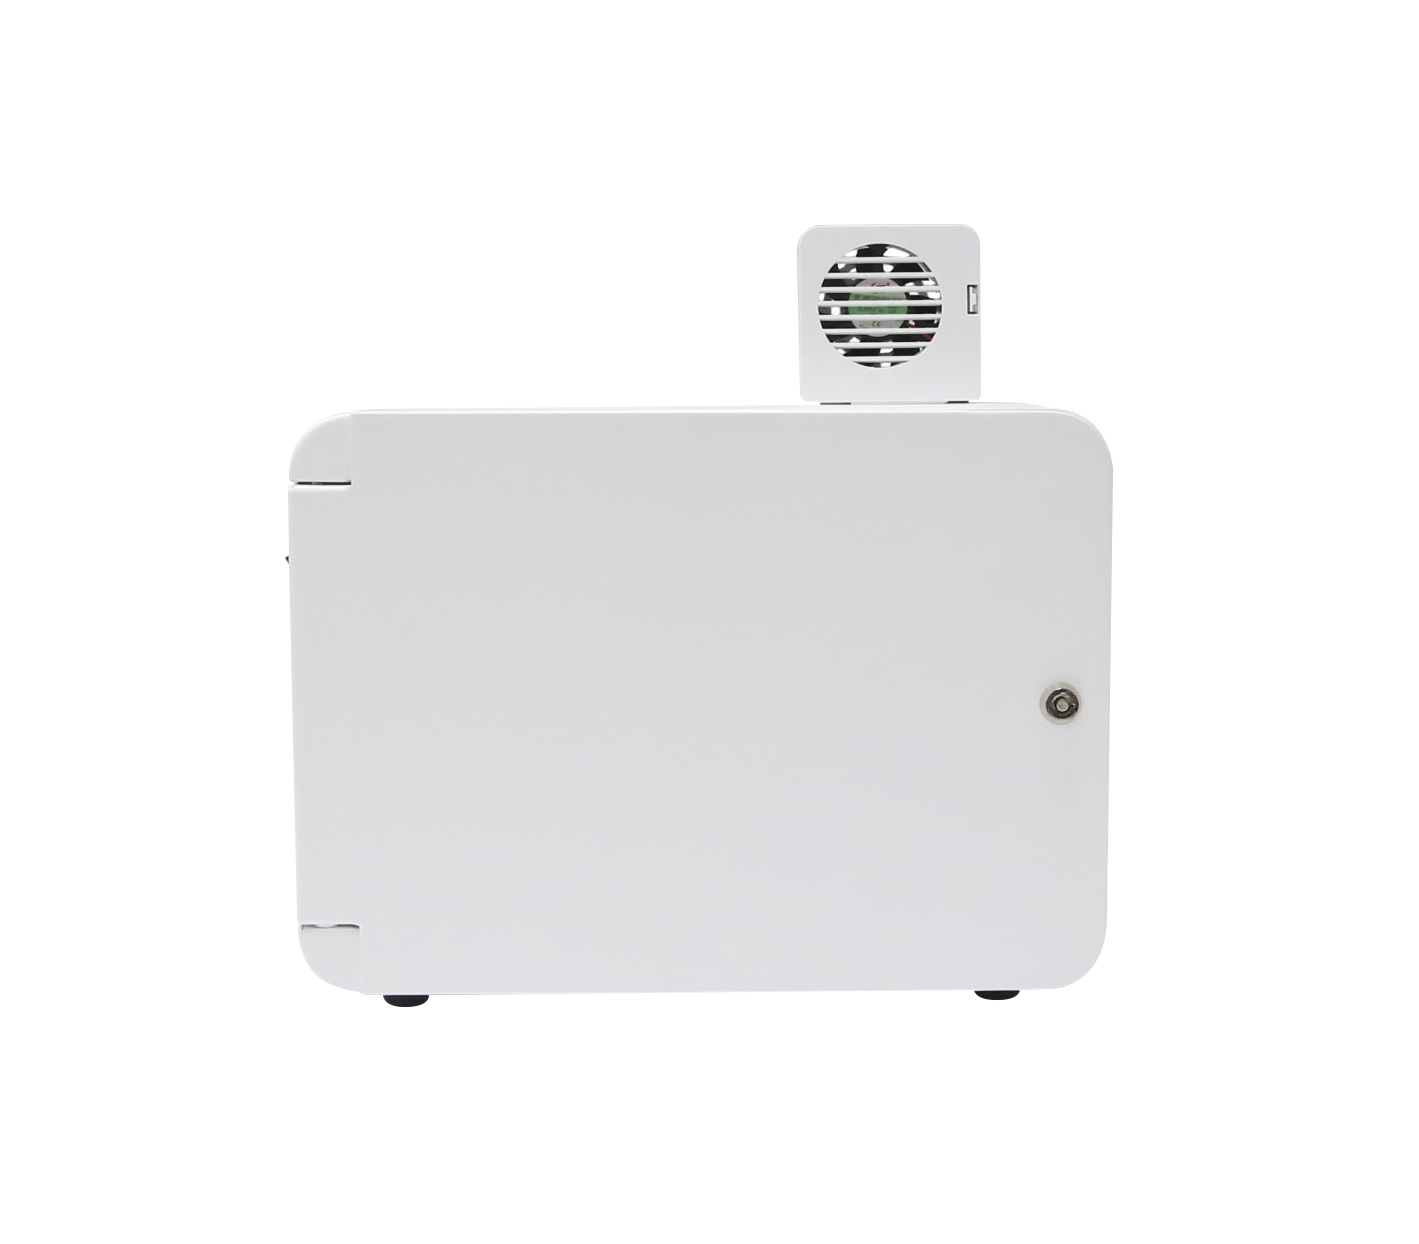 ow-3000 side view with fan